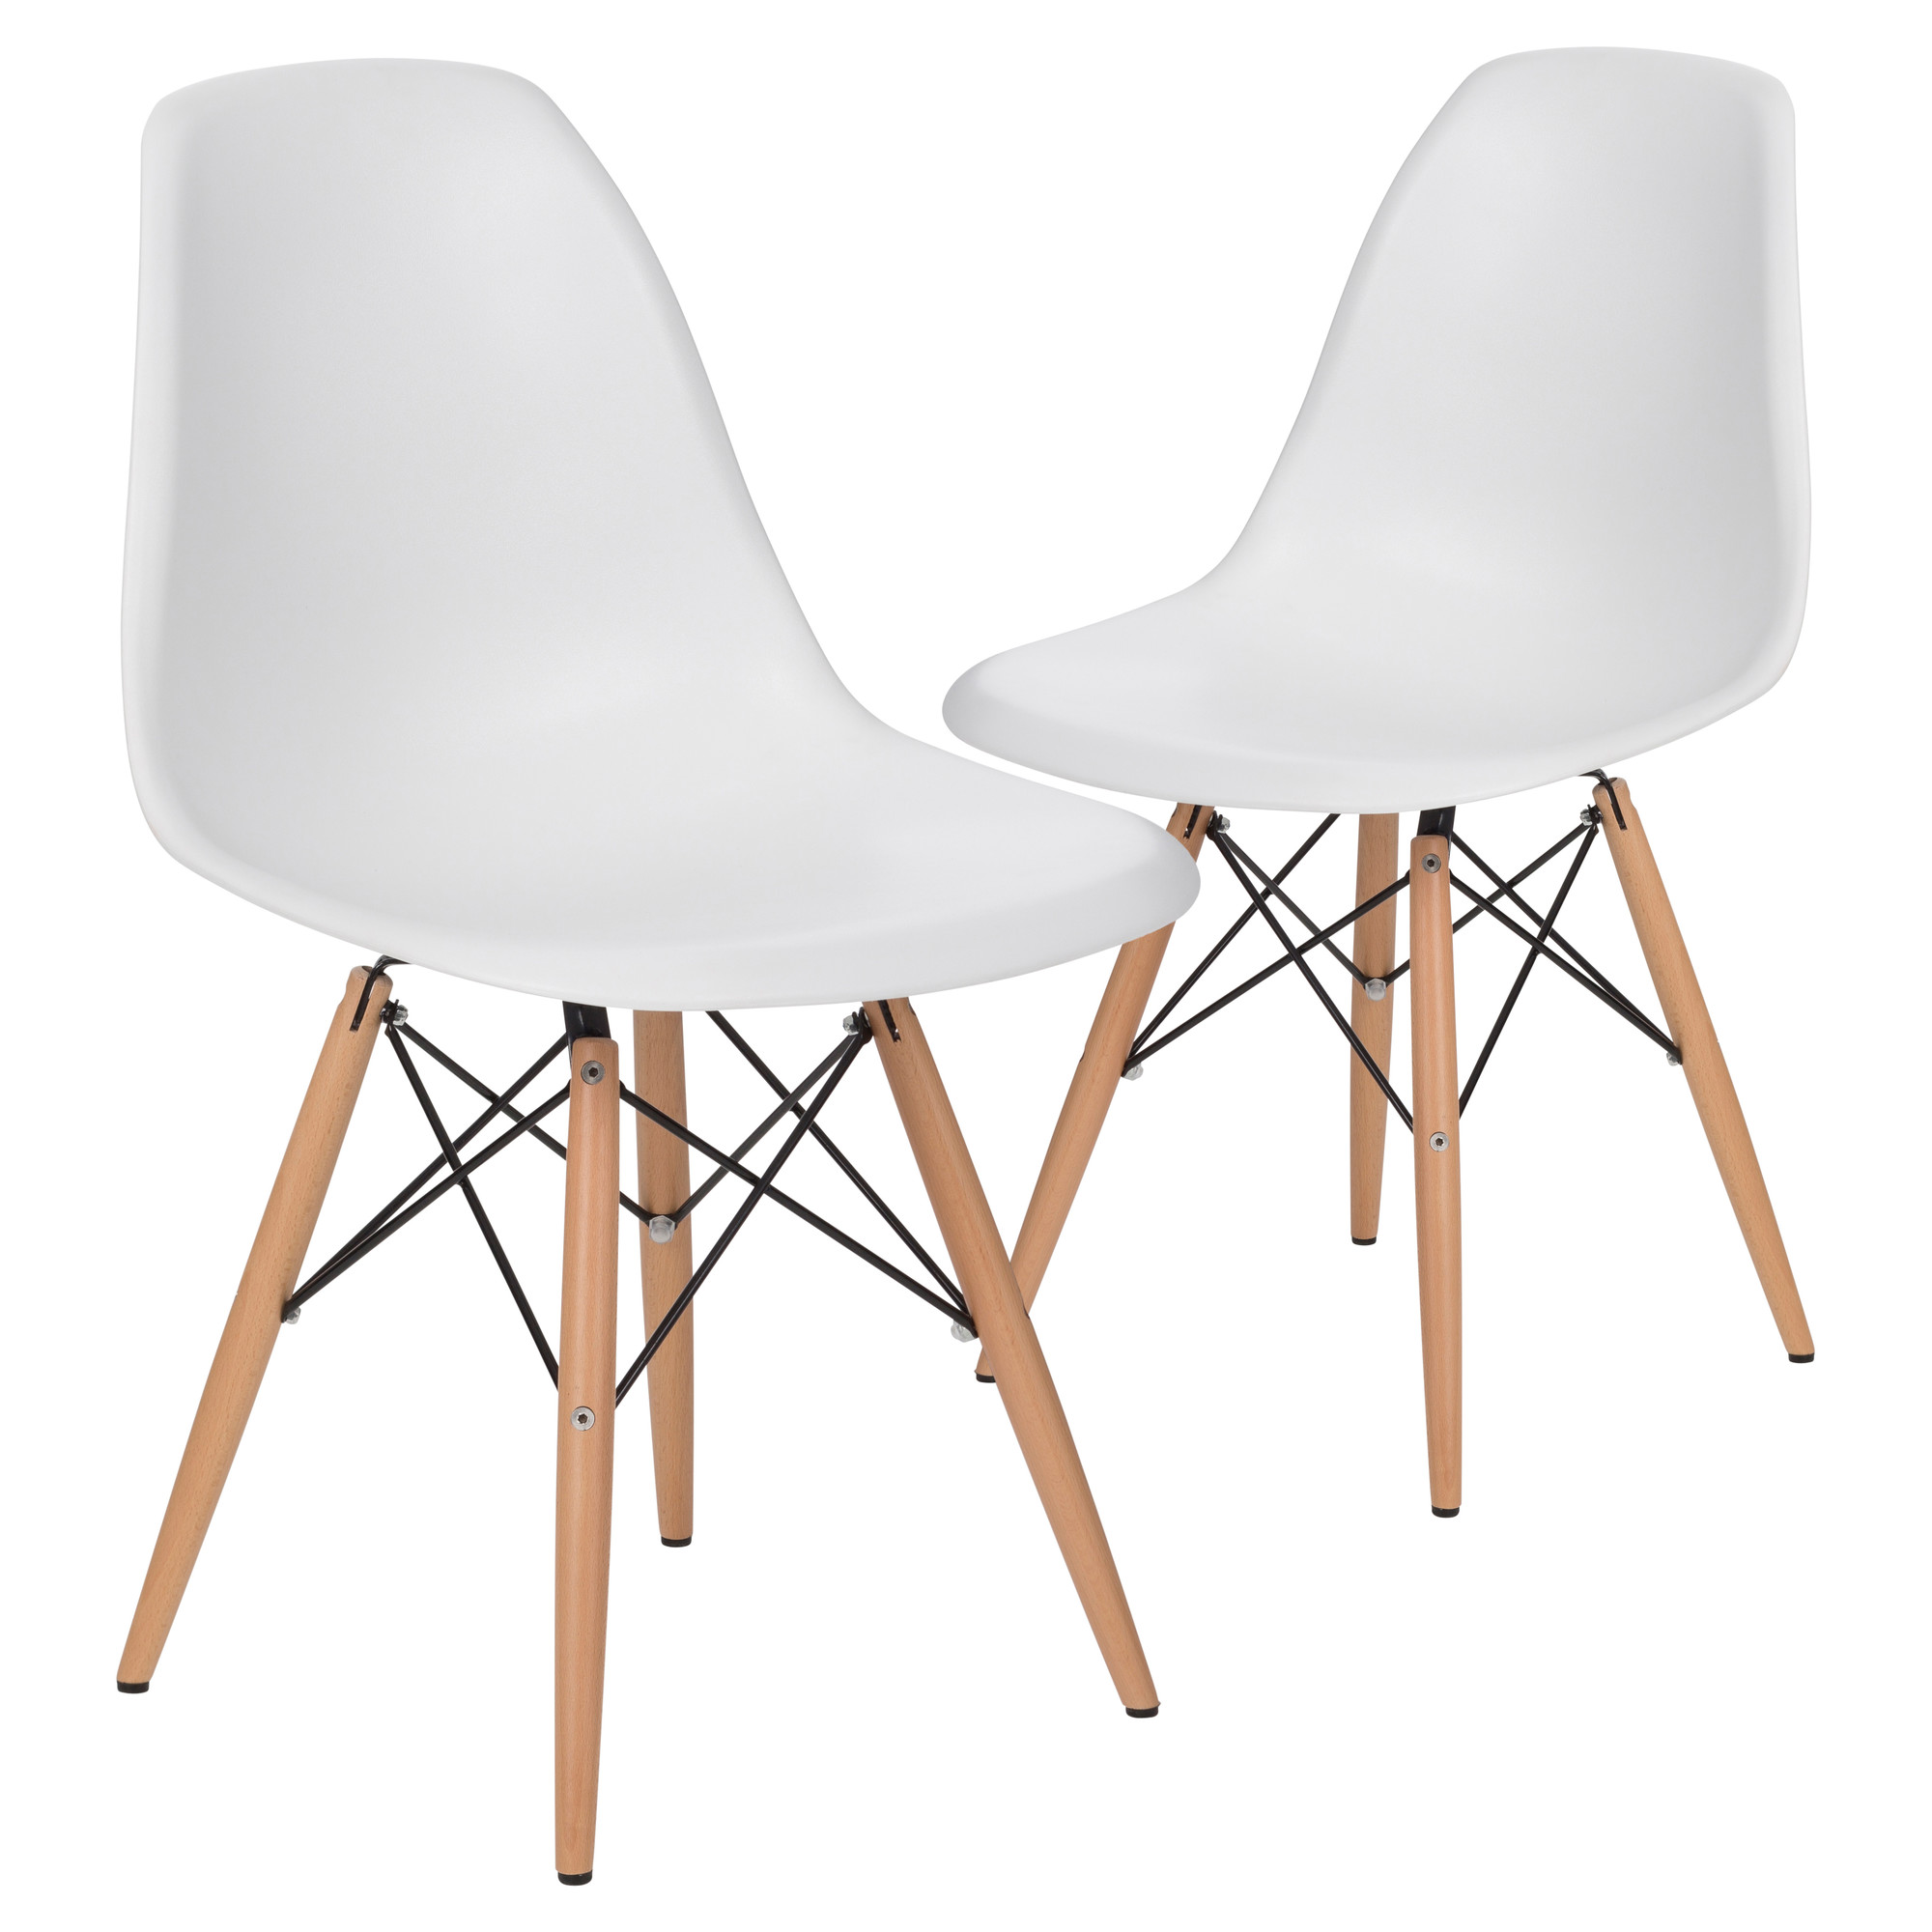 New eames replica dsw dining side chair ebay for Eames side chair replica